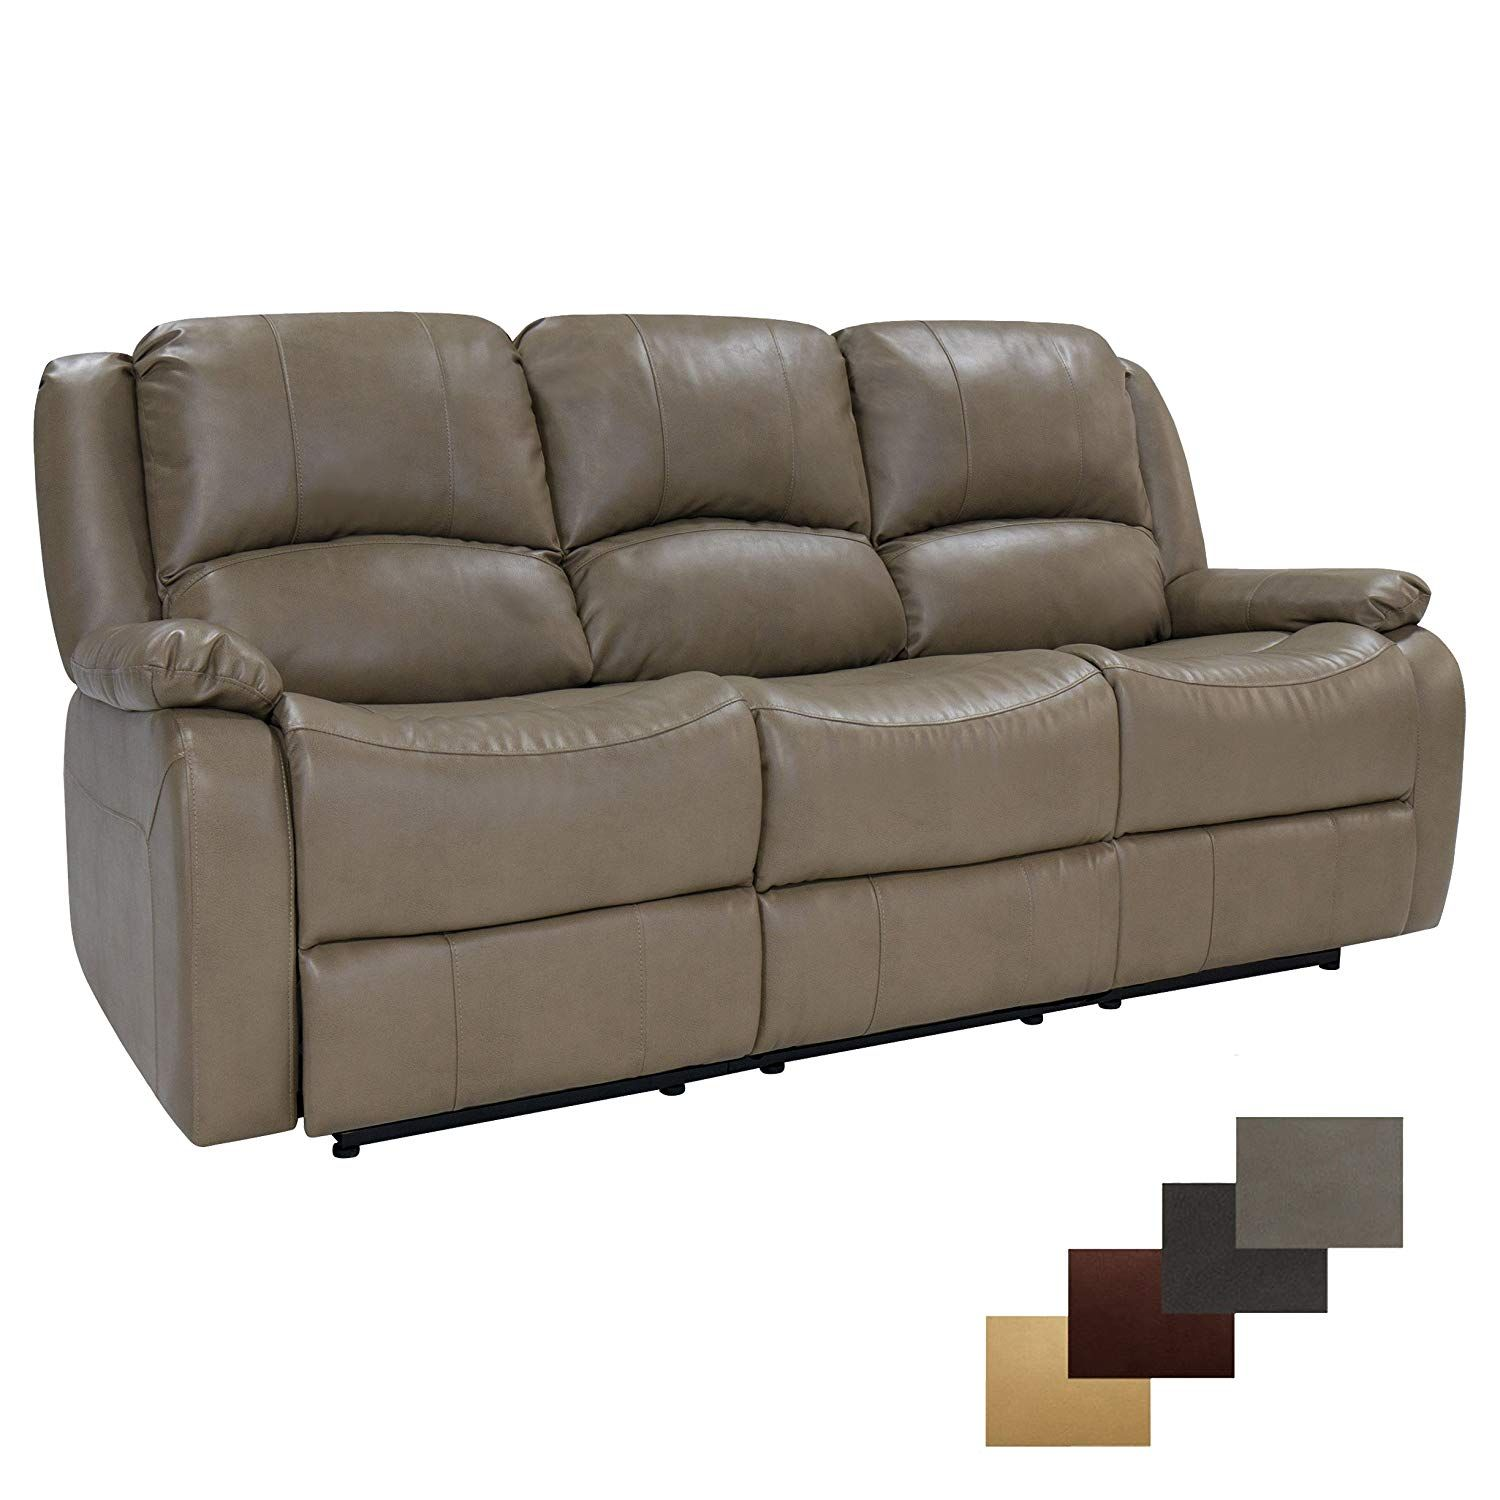 80 Triple Recliner RV Sofa /& Drop Down Console RecPro Charles Collection Furniture RV Theater Seating RV Furniture RV Zero Wall Wall Hugger Recliner RV Living Room Toffee Slideout